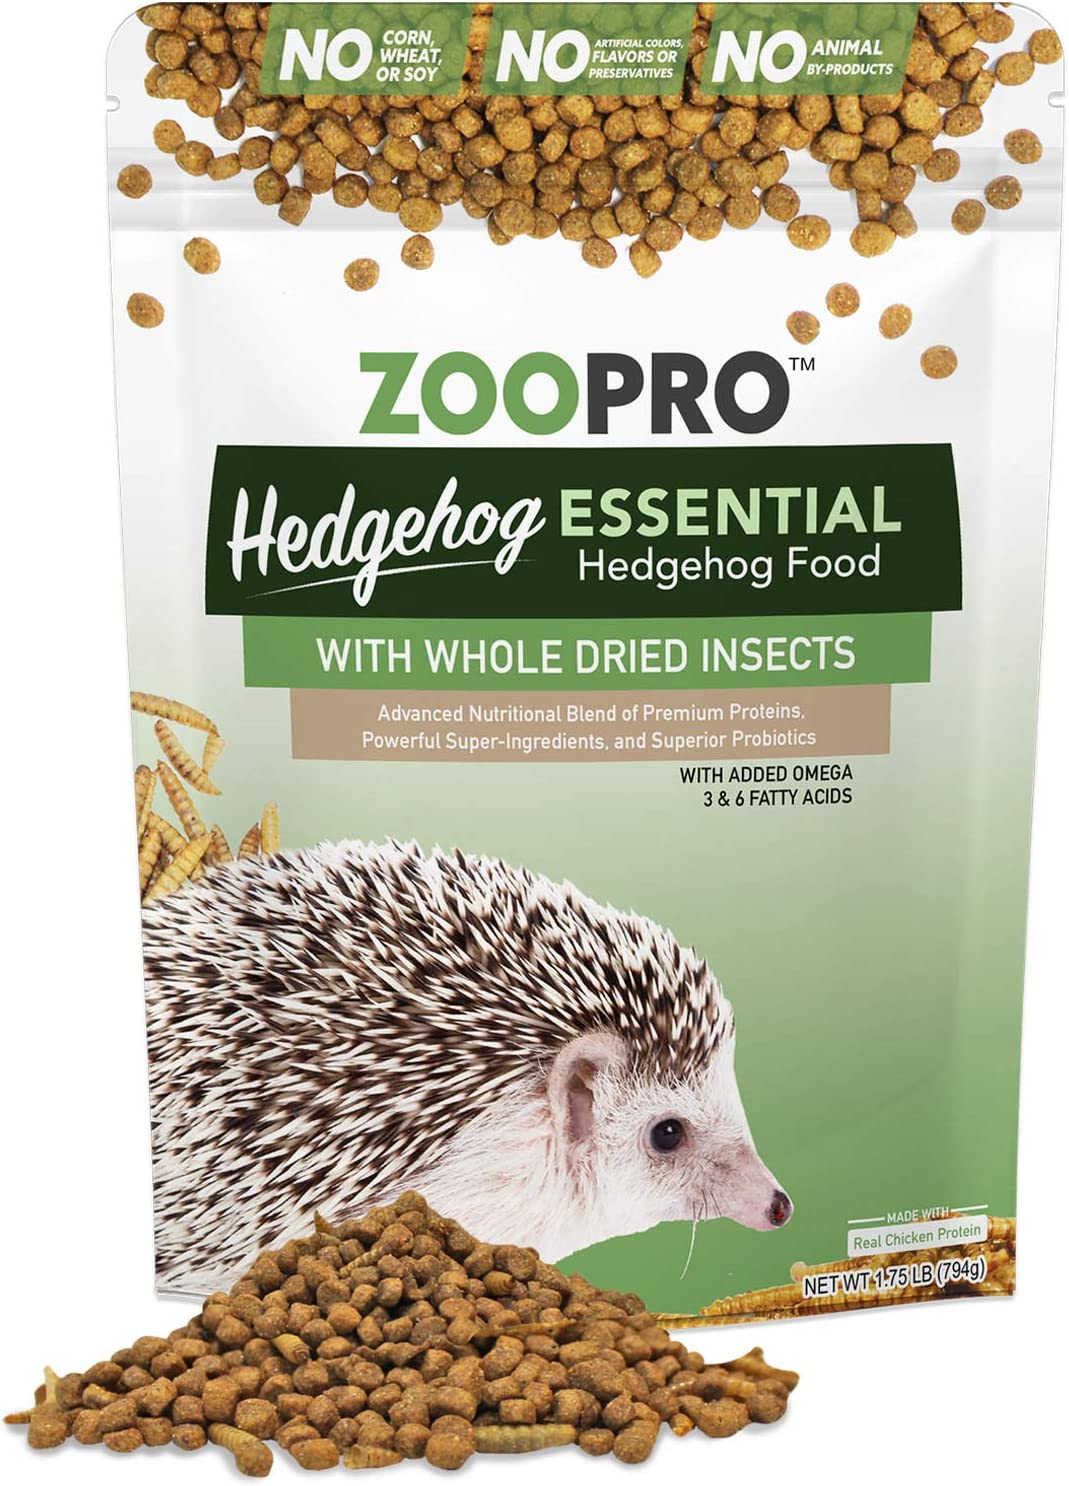 ZooPro Hedgehog Essential (5.25 lb.) - Healthy Balanced Hedgehog Food - High Protein Kibble with Mealworms and Black Soldier Fly Larvae - No Fillers, Additives, or Artificial Preservatives